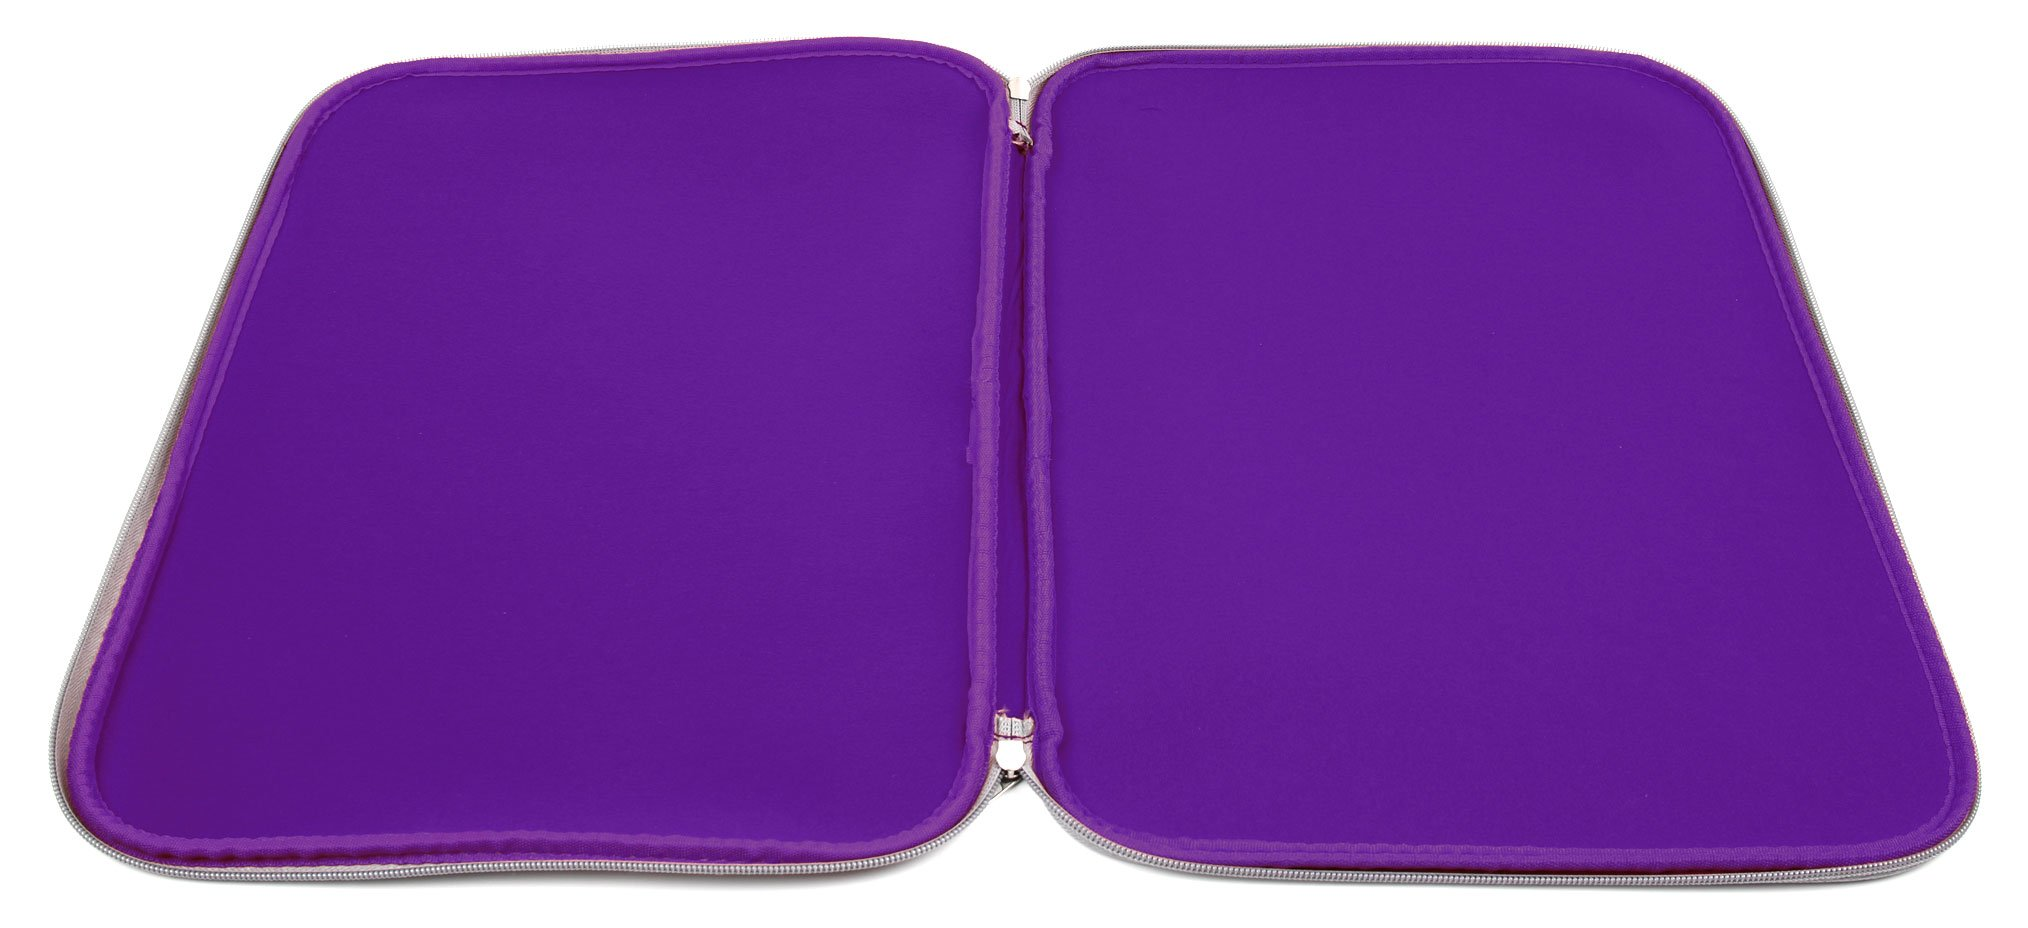 DURAGADGET Purple Travel Water Resistant & Shock Absorbent Neoprene Laptop Sleeve with Dual Zips Compatible with The Lenovo Ideapad 110 15'' | Ideapad 305 15.6'' Laptop by DURAGADGET (Image #5)